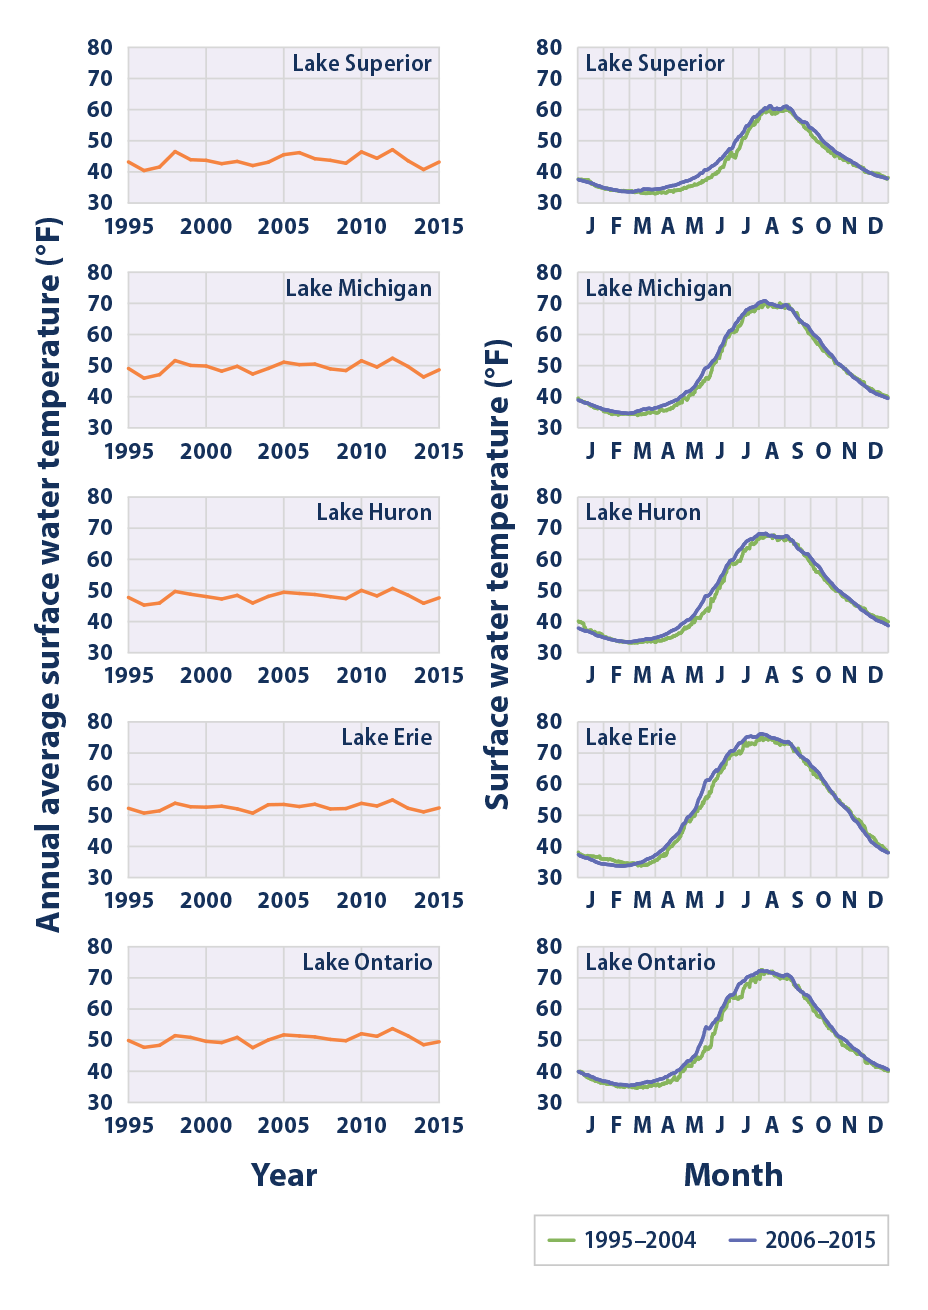 Line graphs showing water temperatures in each of the Great Lakes from 1995 to 2015.